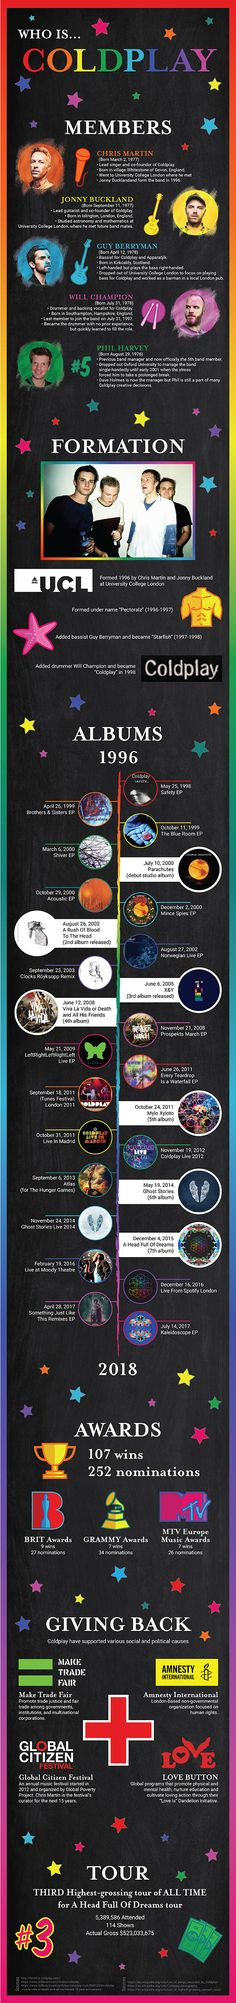 231 Best Coldplay Fandom images in 2018 | Cool bands, Chris martin